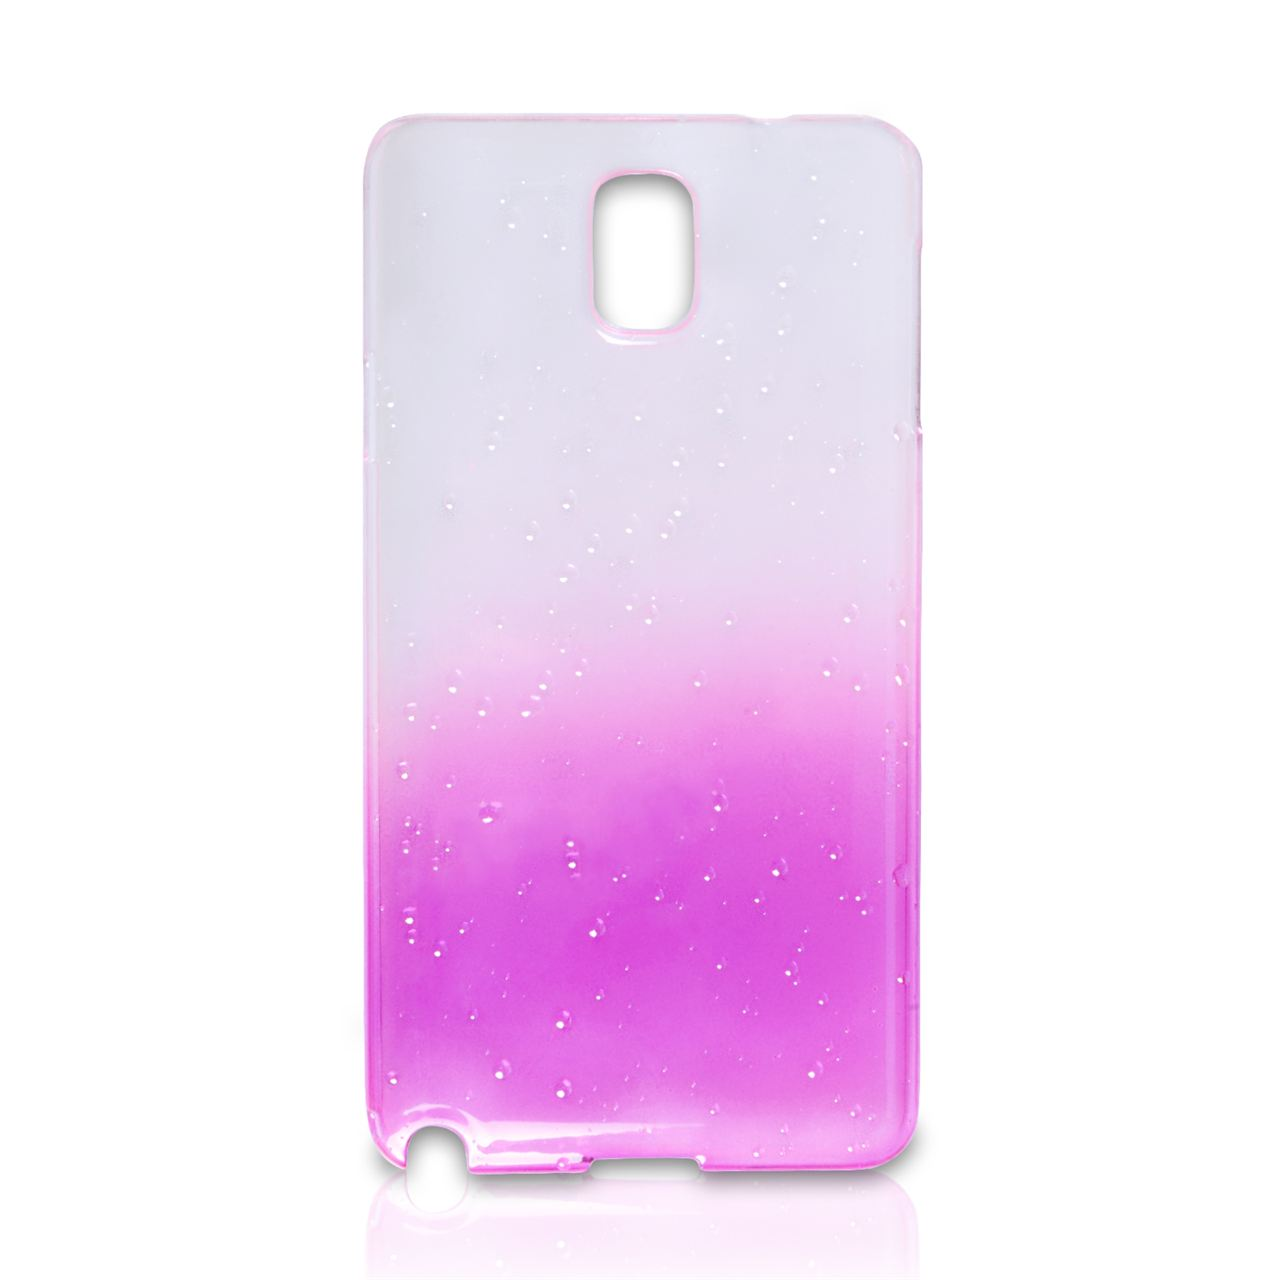 YouSave Accessories Samsung Galaxy Note 3 Waterdrop Hard Case - Purple